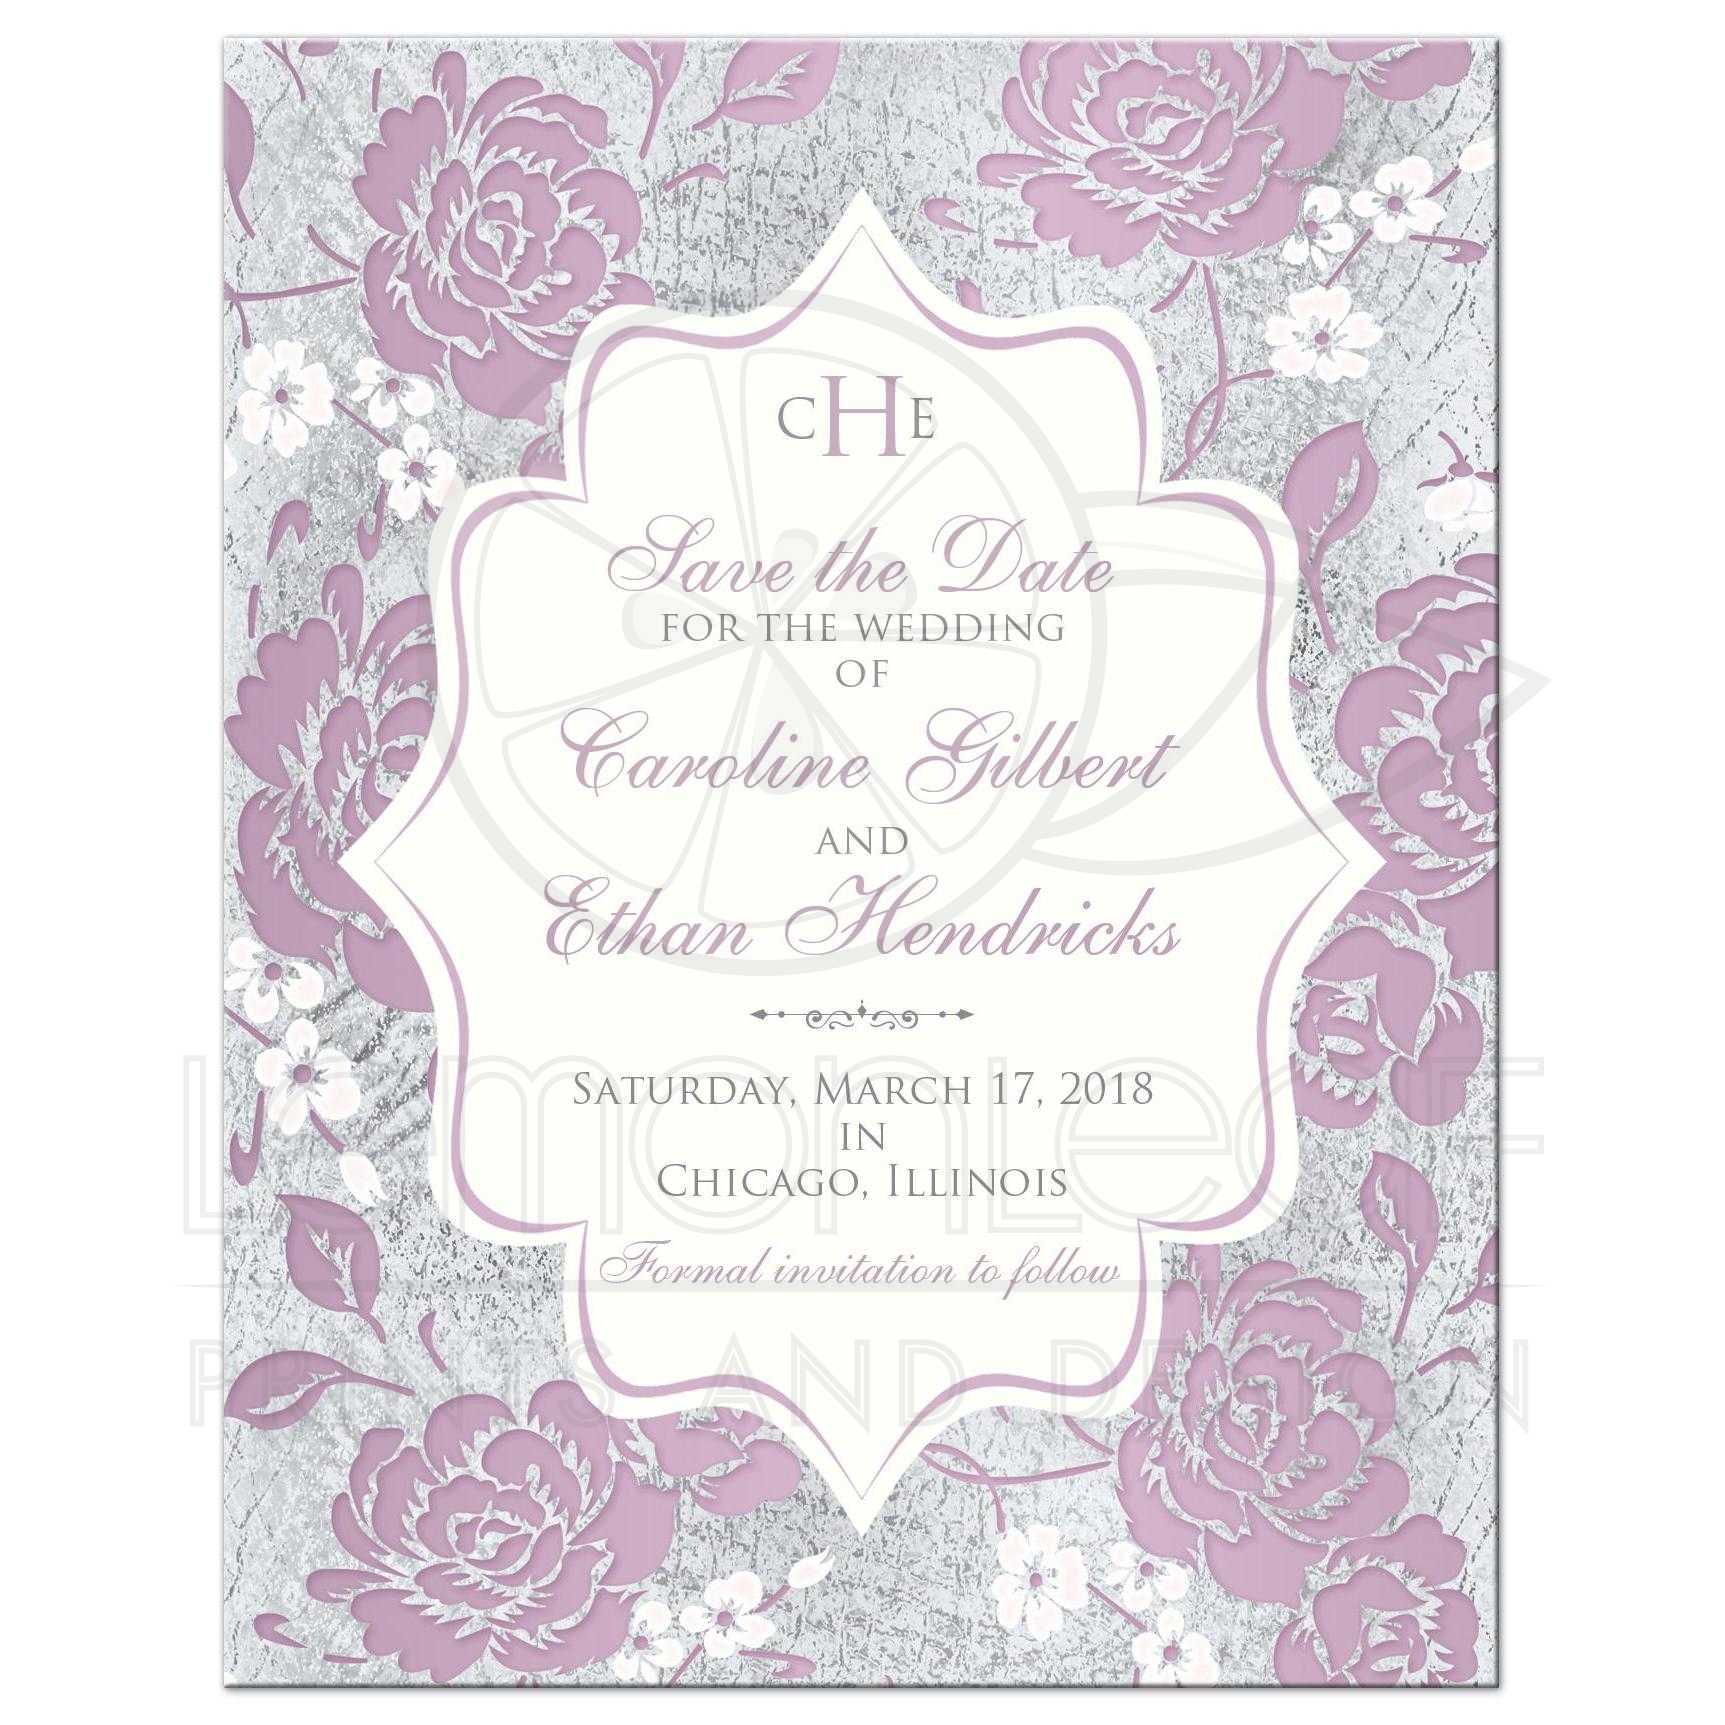 save the date ideas save the date 2082485 weddbook